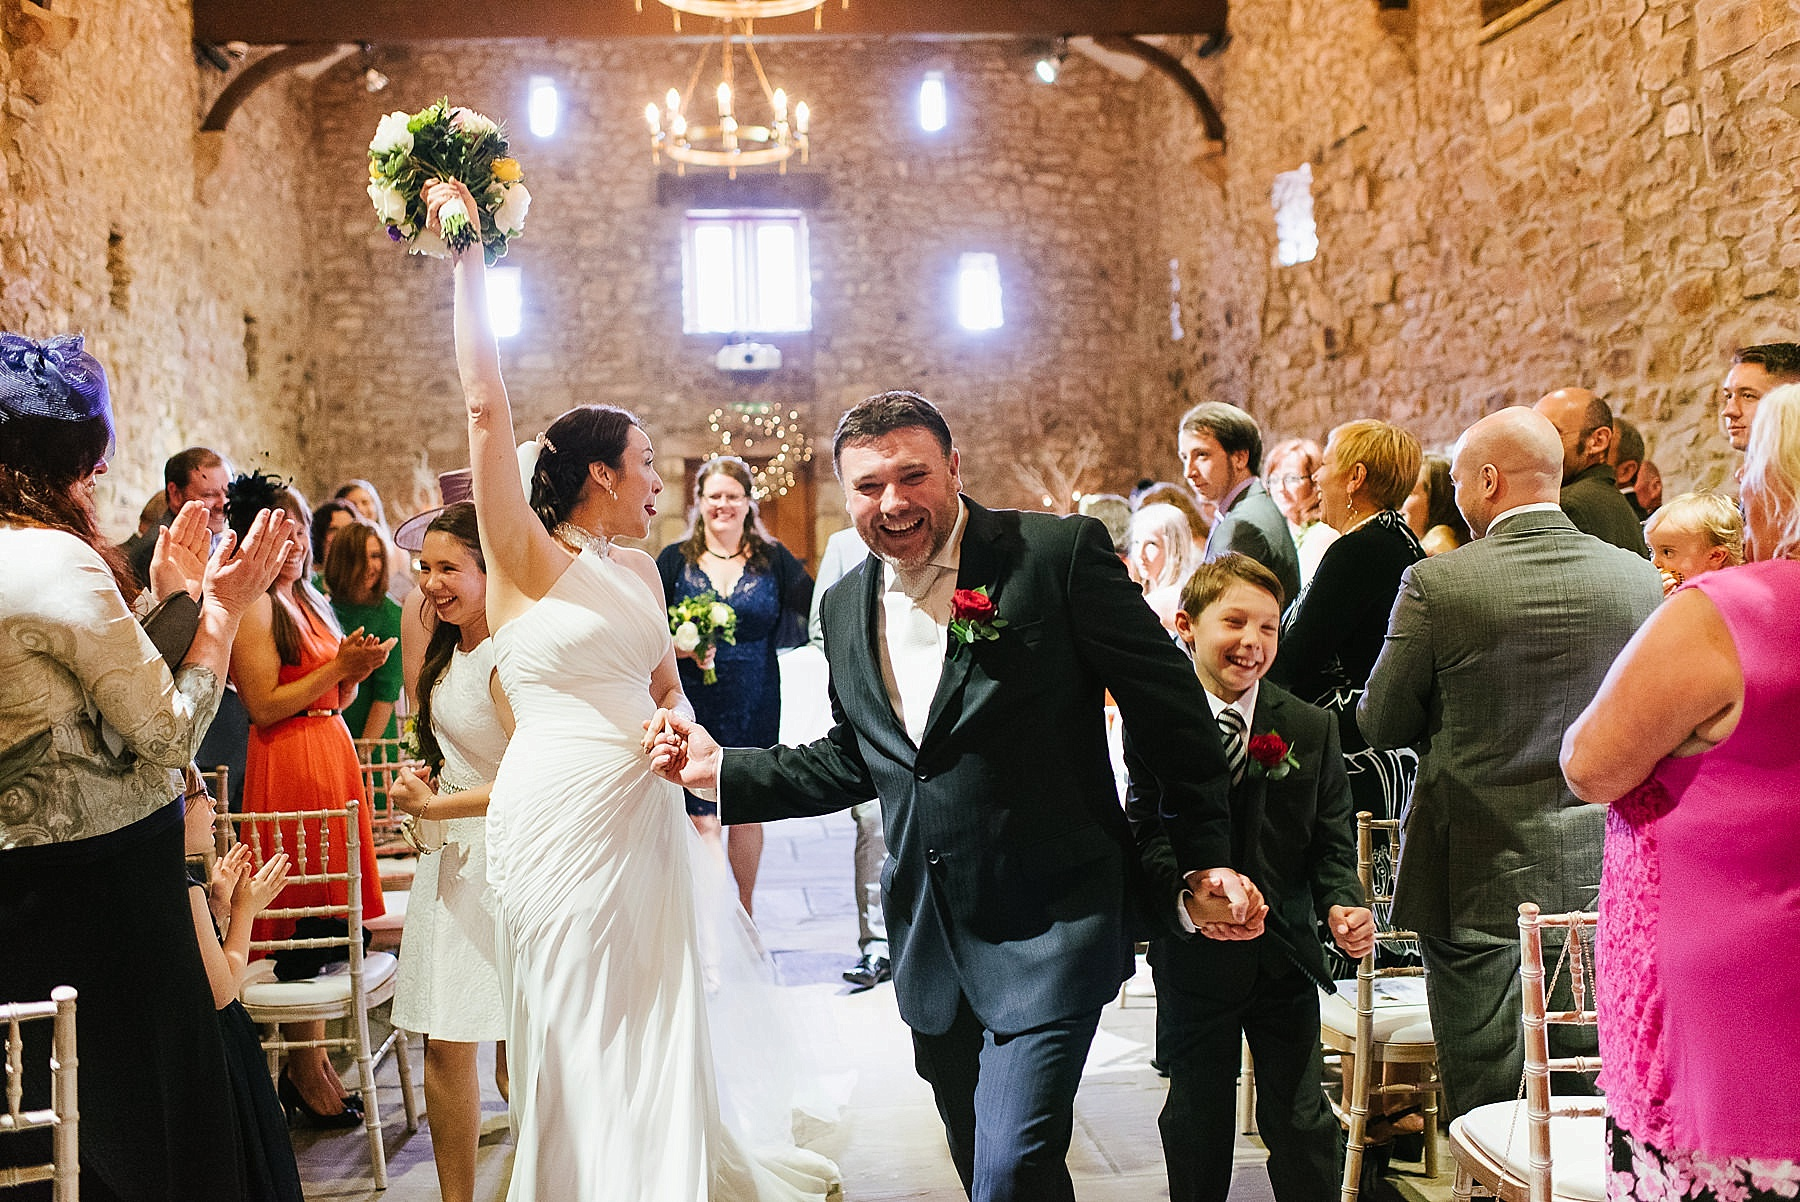 running down the aisle with bouquet in the air